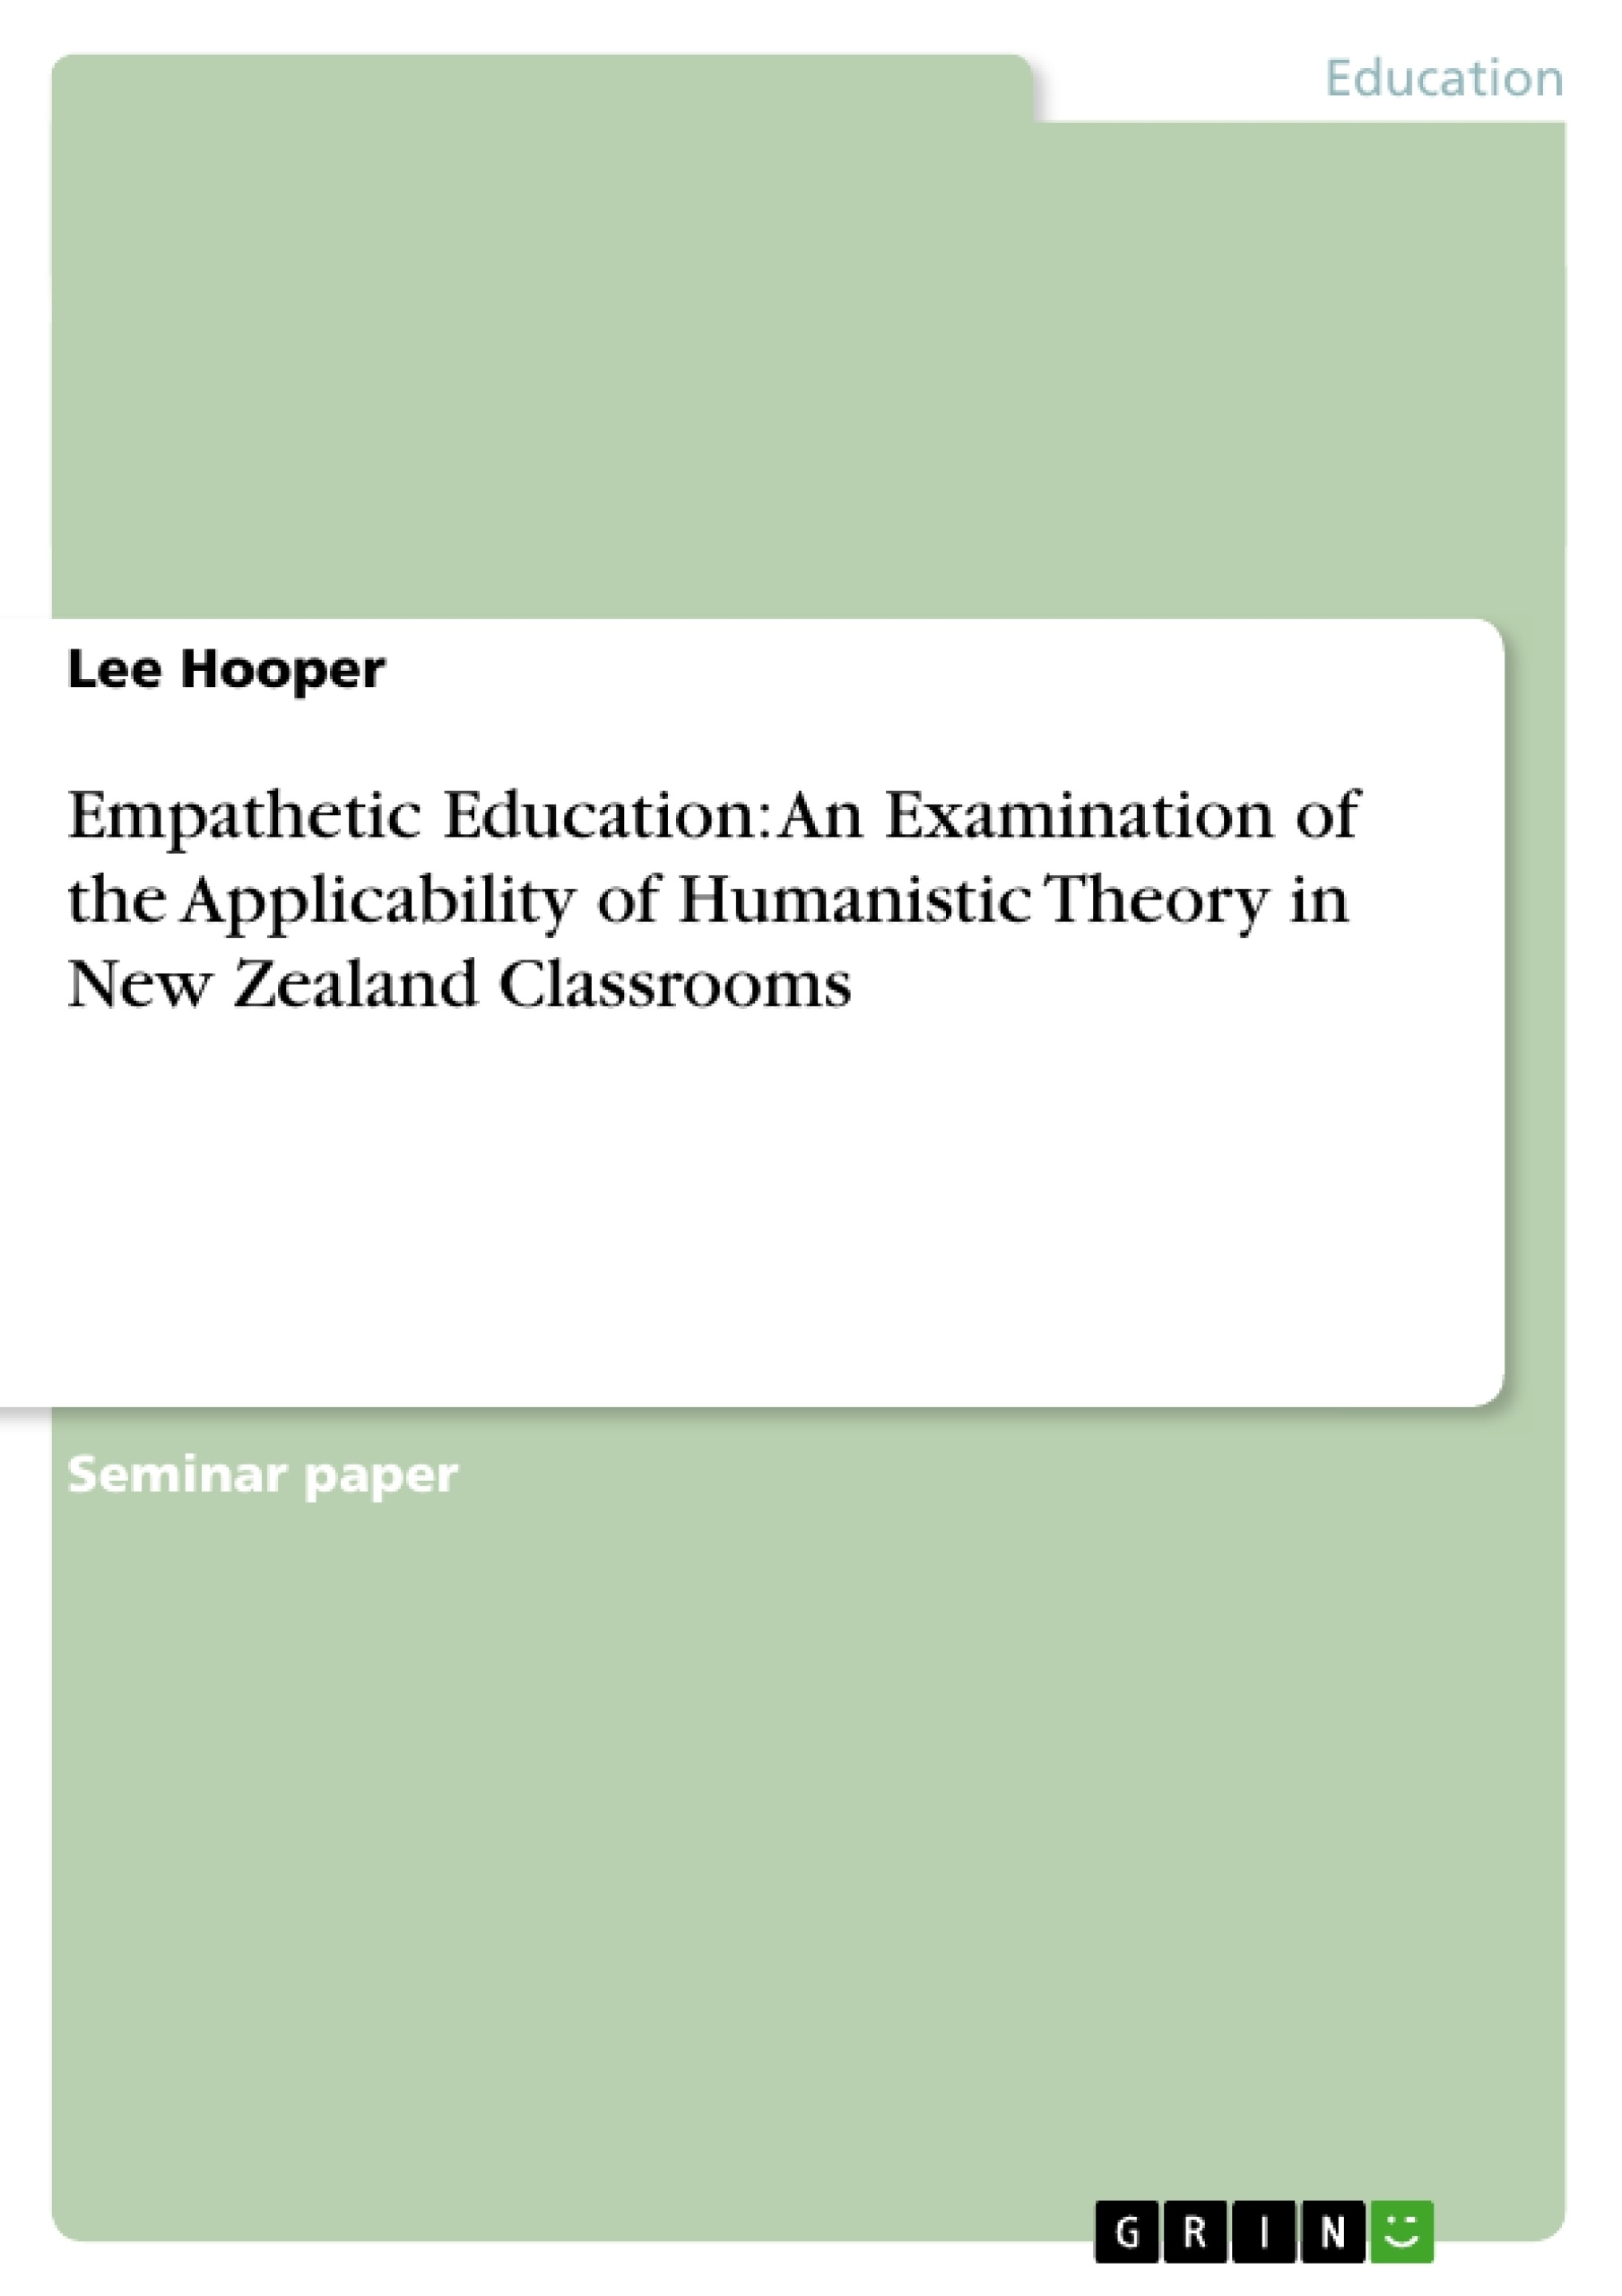 Title: Empathetic Education: An Examination of the Applicability of Humanistic Theory in New Zealand Classrooms